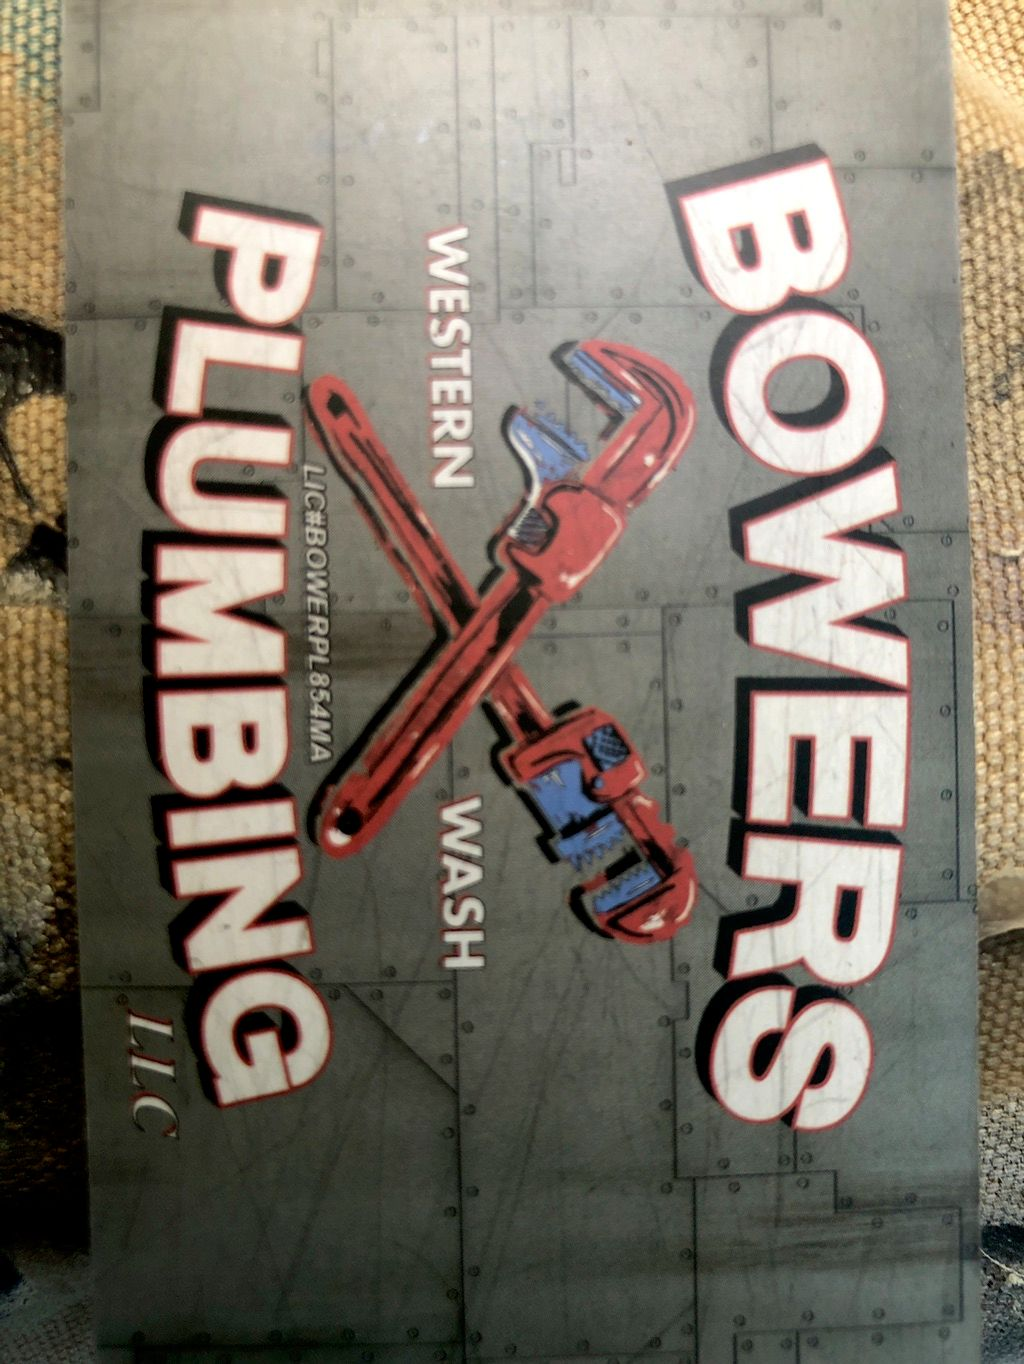 Bowers Plumbing and Construction